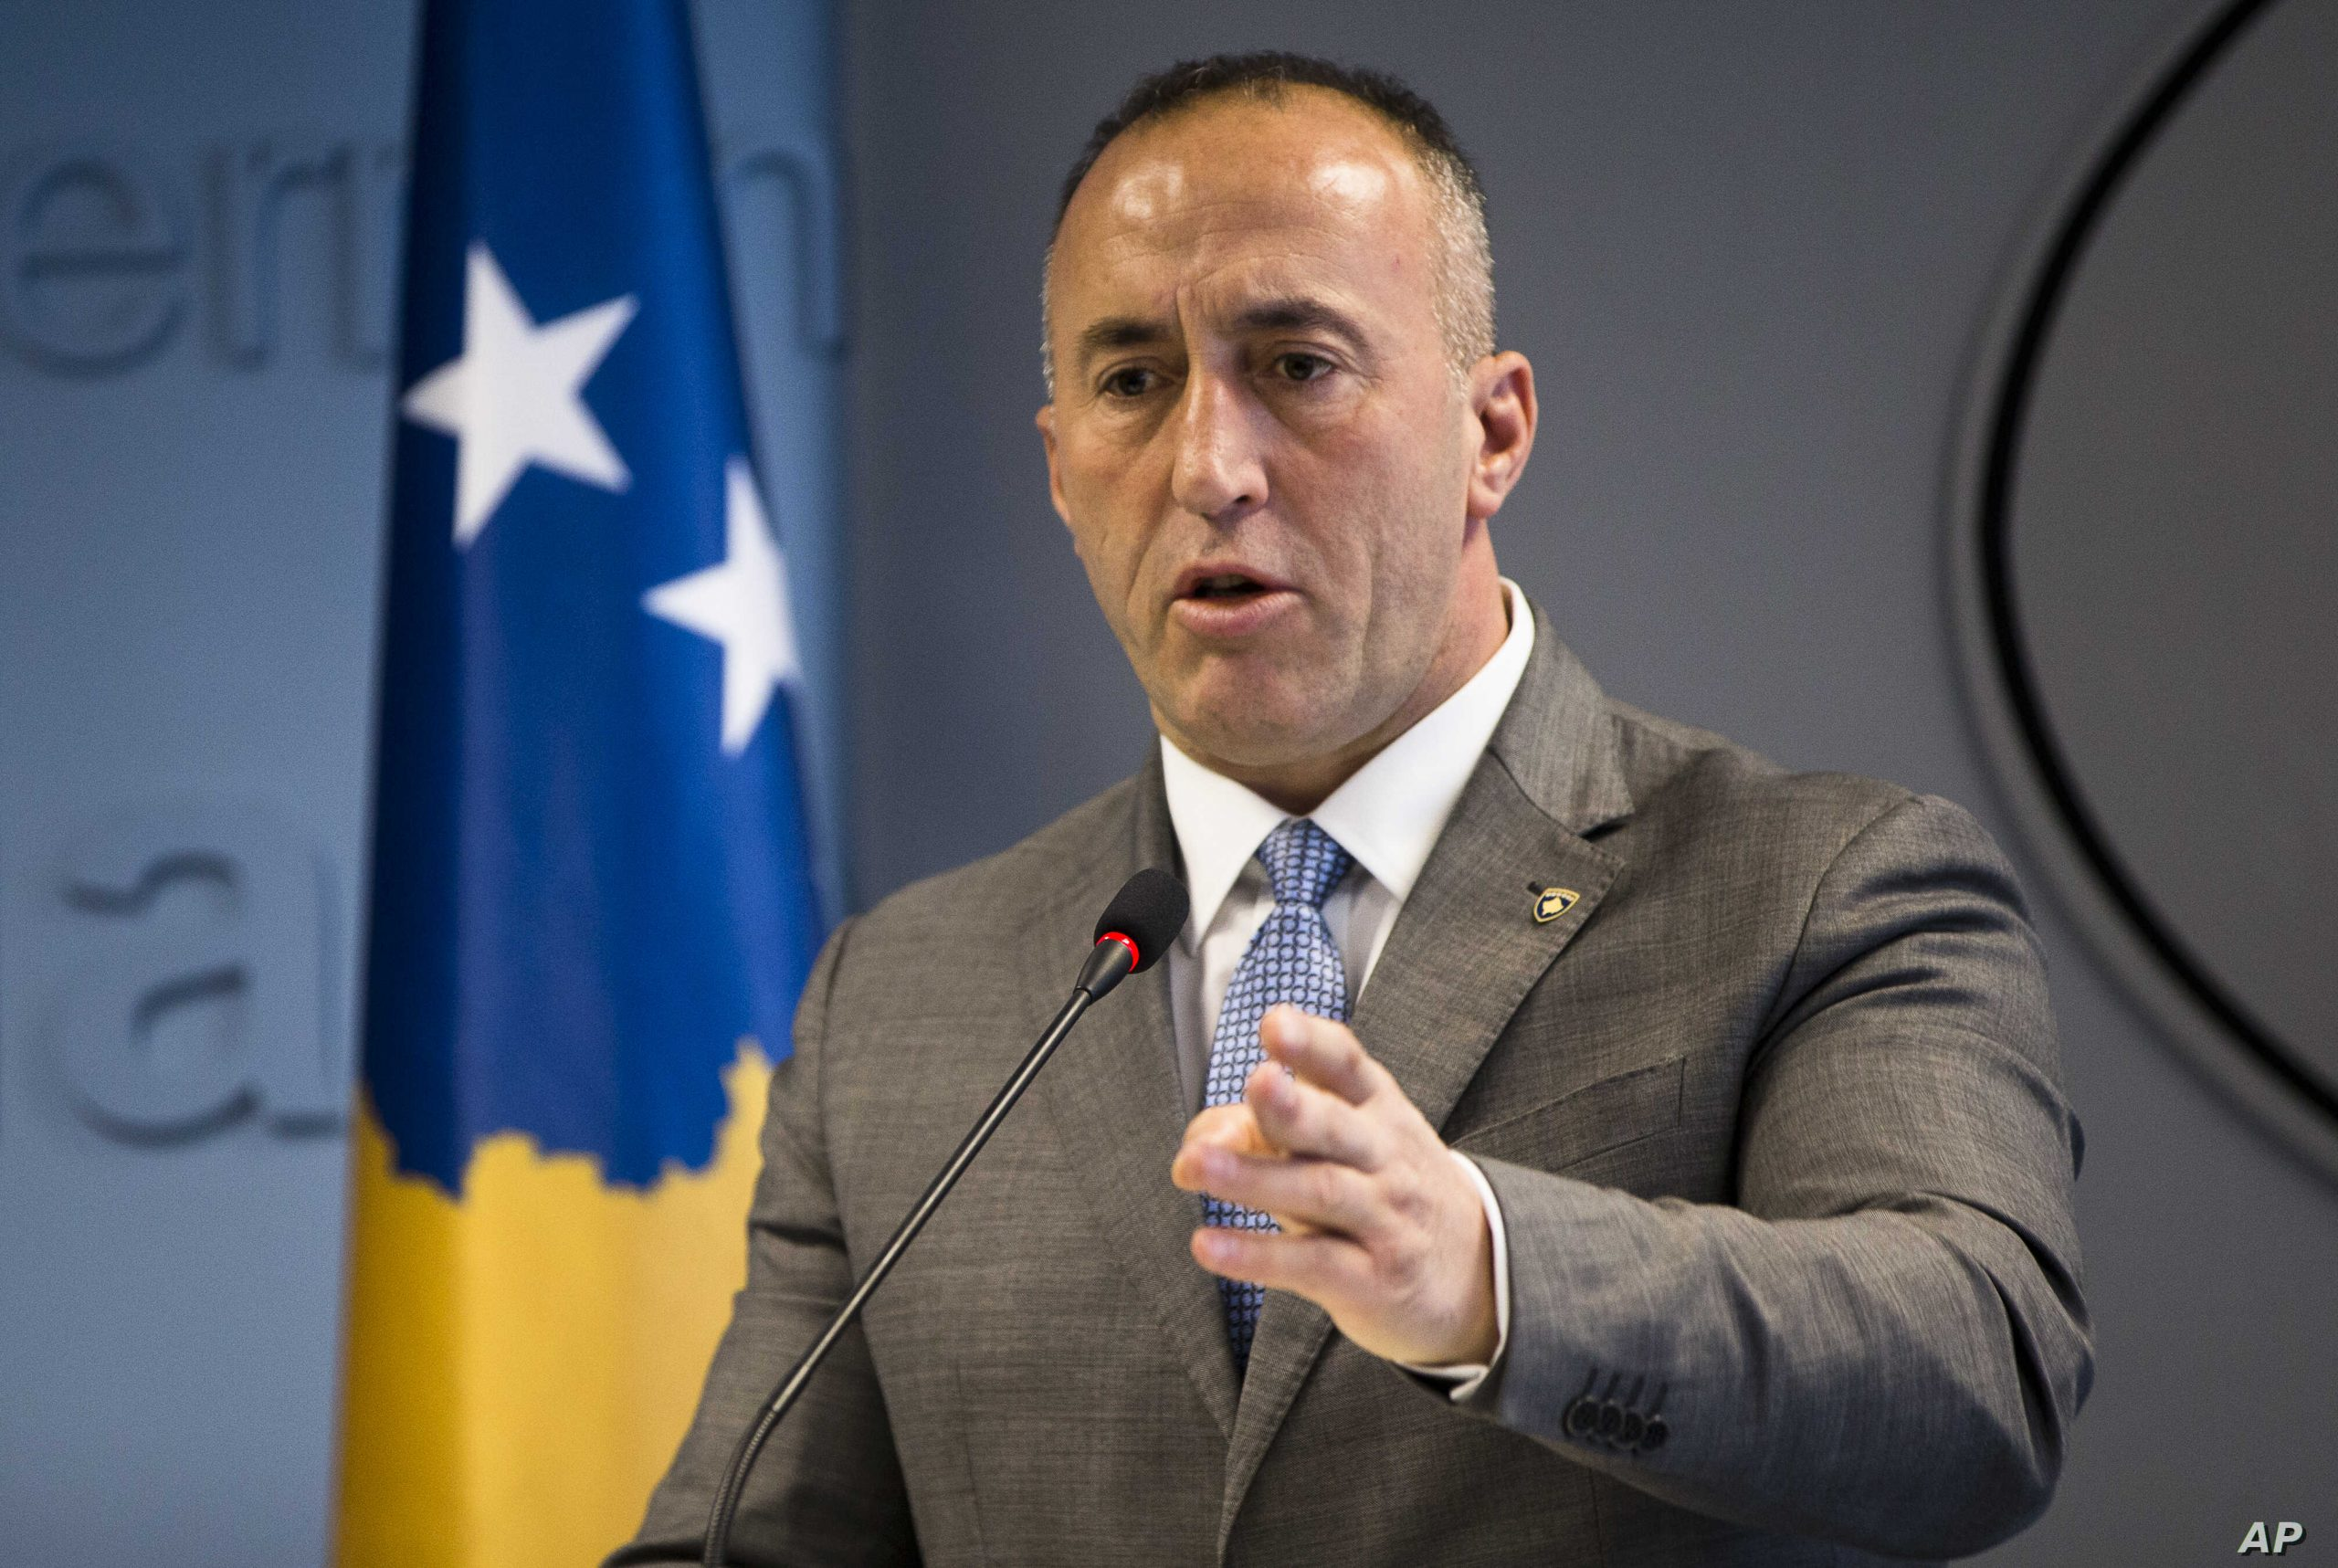 Haradinaj's Statement on Great Albania Sparks Harsh Reactions from Serbia